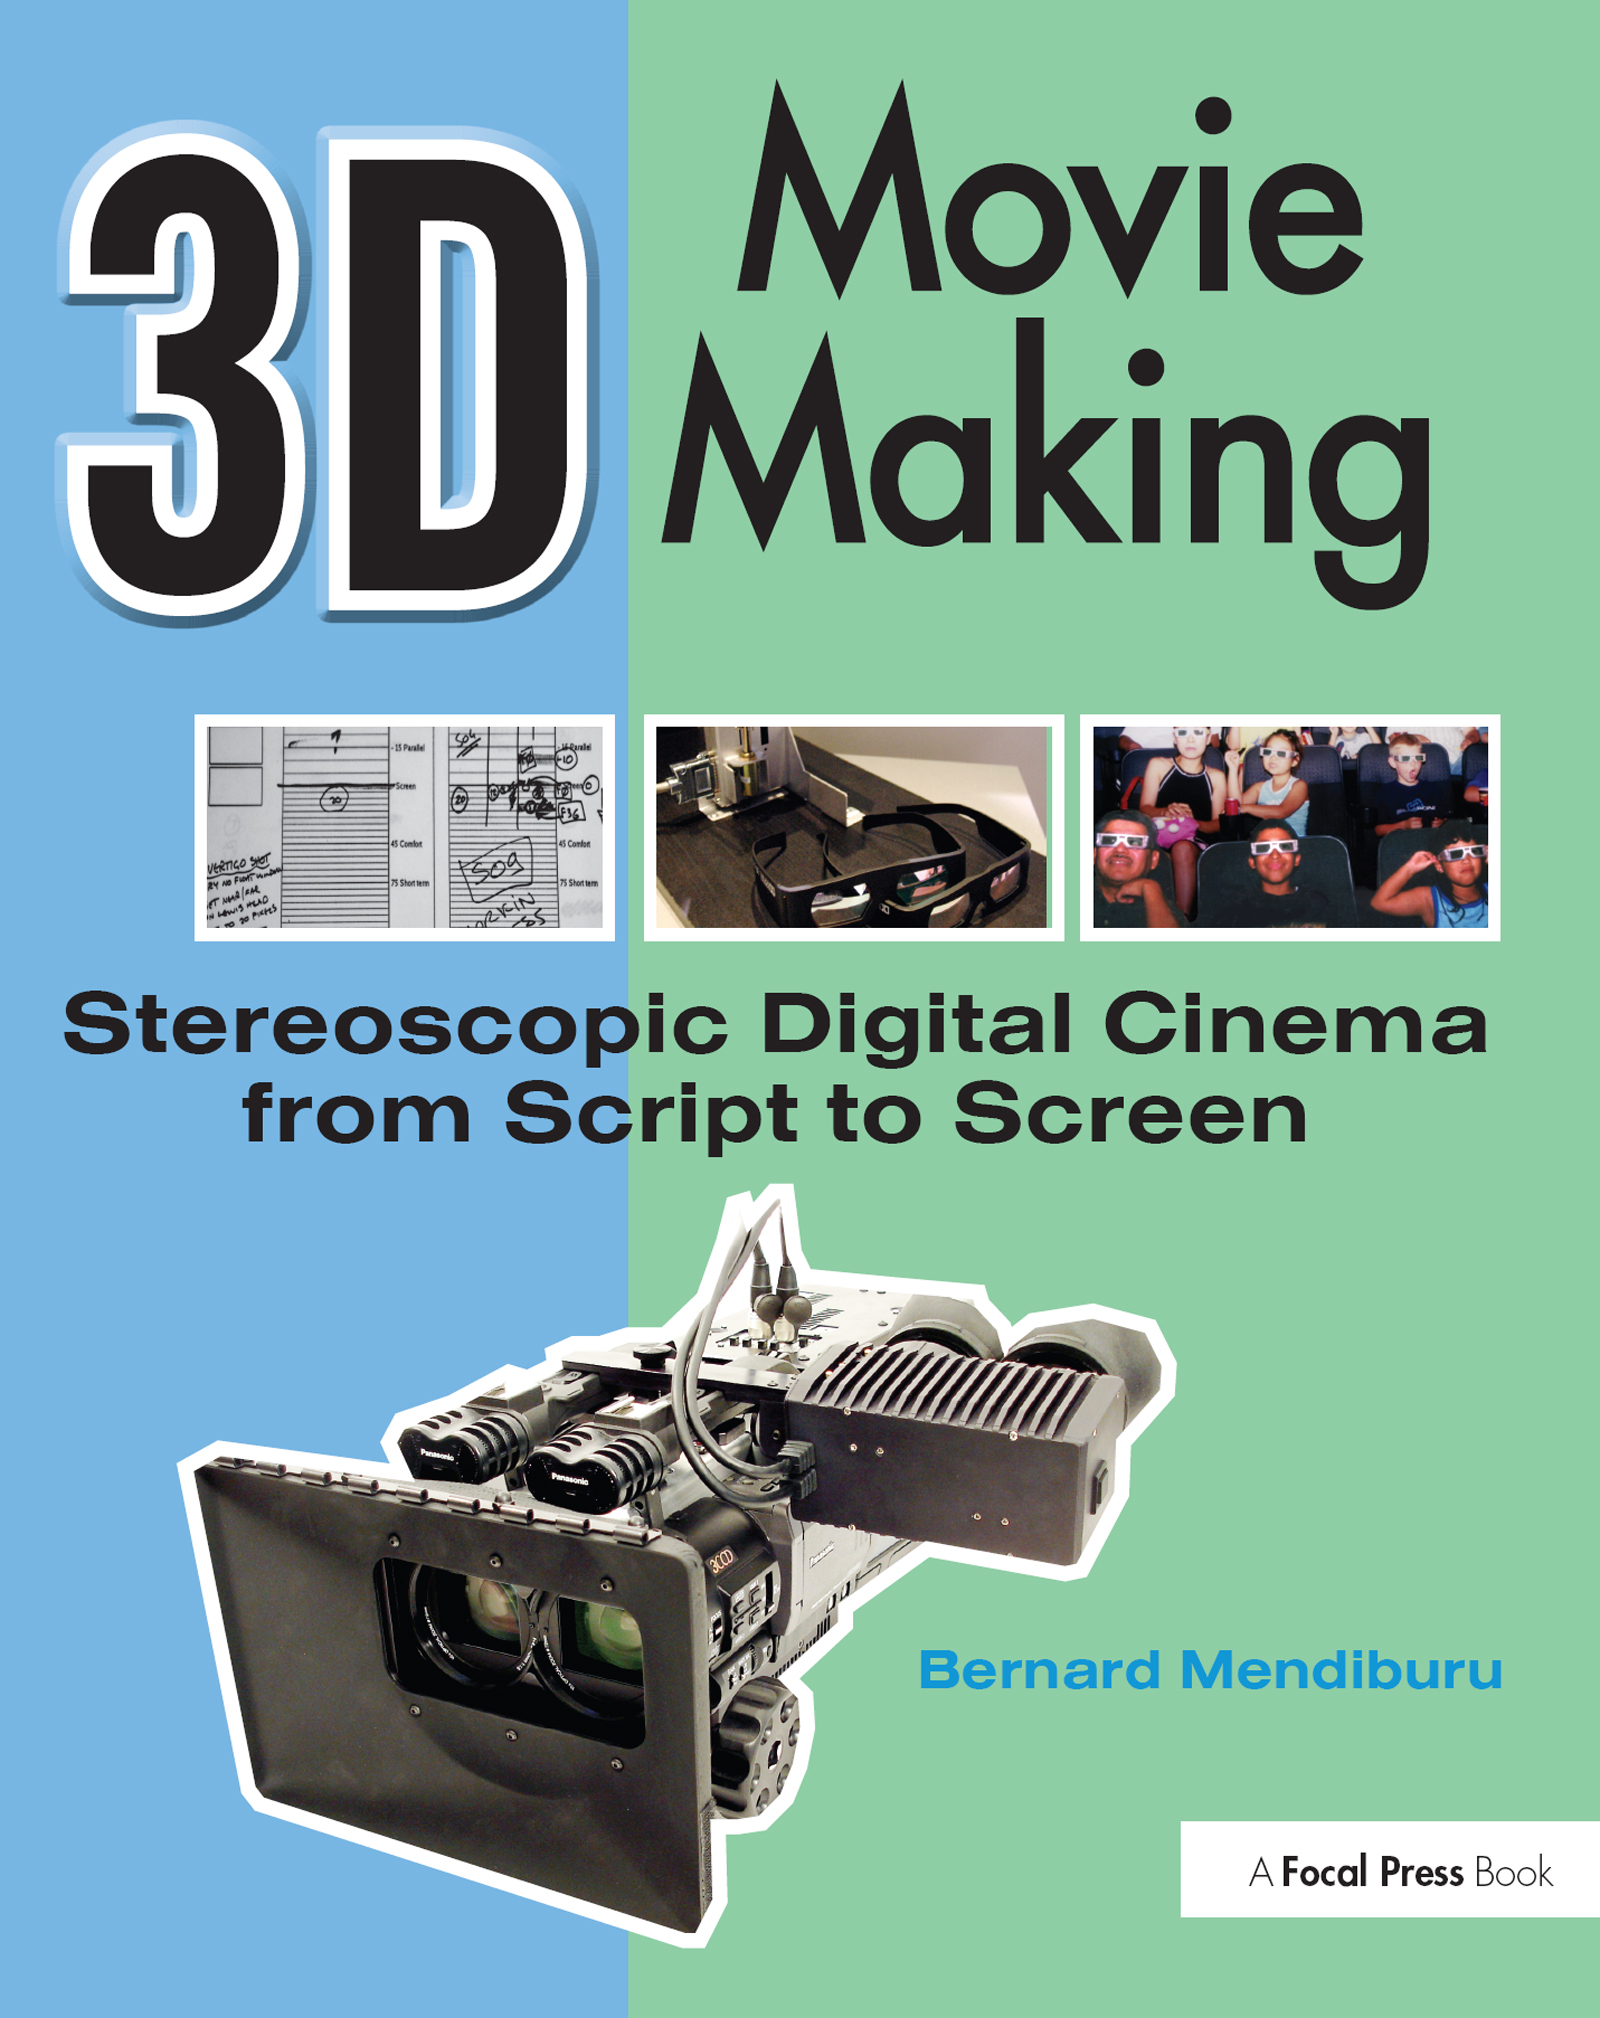 3D Movie Making: Stereoscopic Digital Cinema from Script to Screen book cover